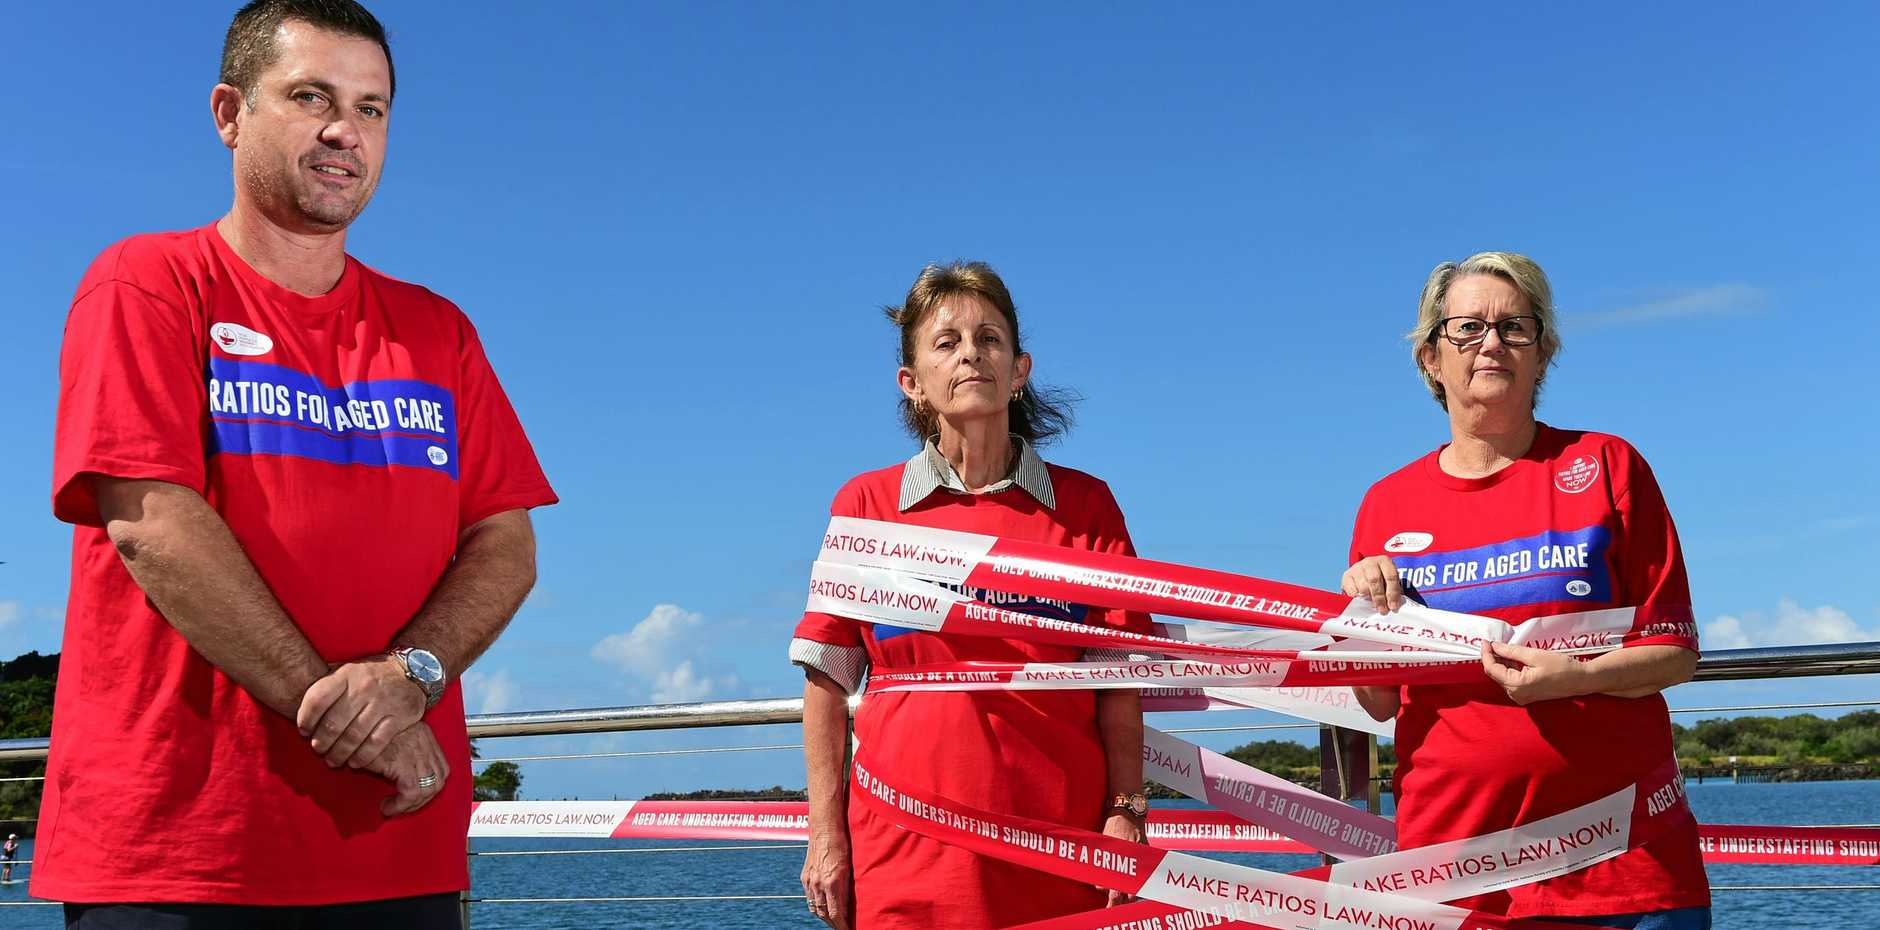 Wayne Baxter and aged care nurses Elanor Bilbie and Suzanne Wilson are calling for improved staffing levels in aged care facilities.